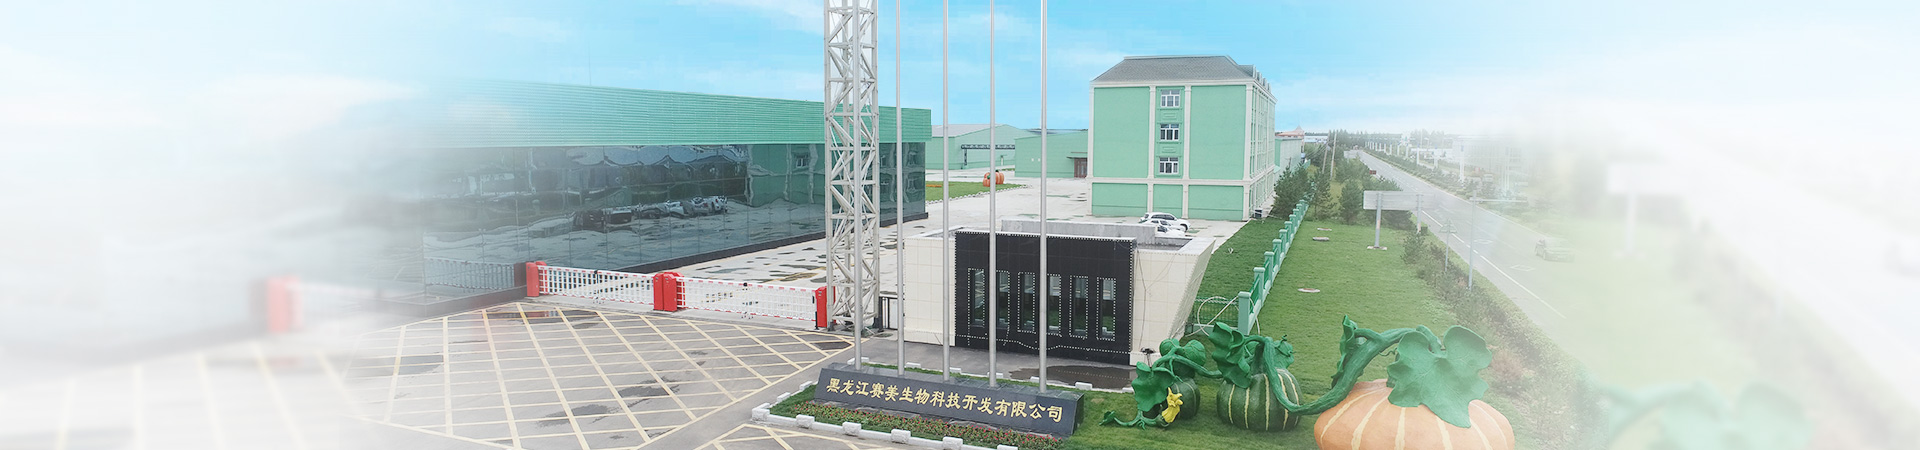 Heilongjiang Saimei Organic Food Co., Ltd.